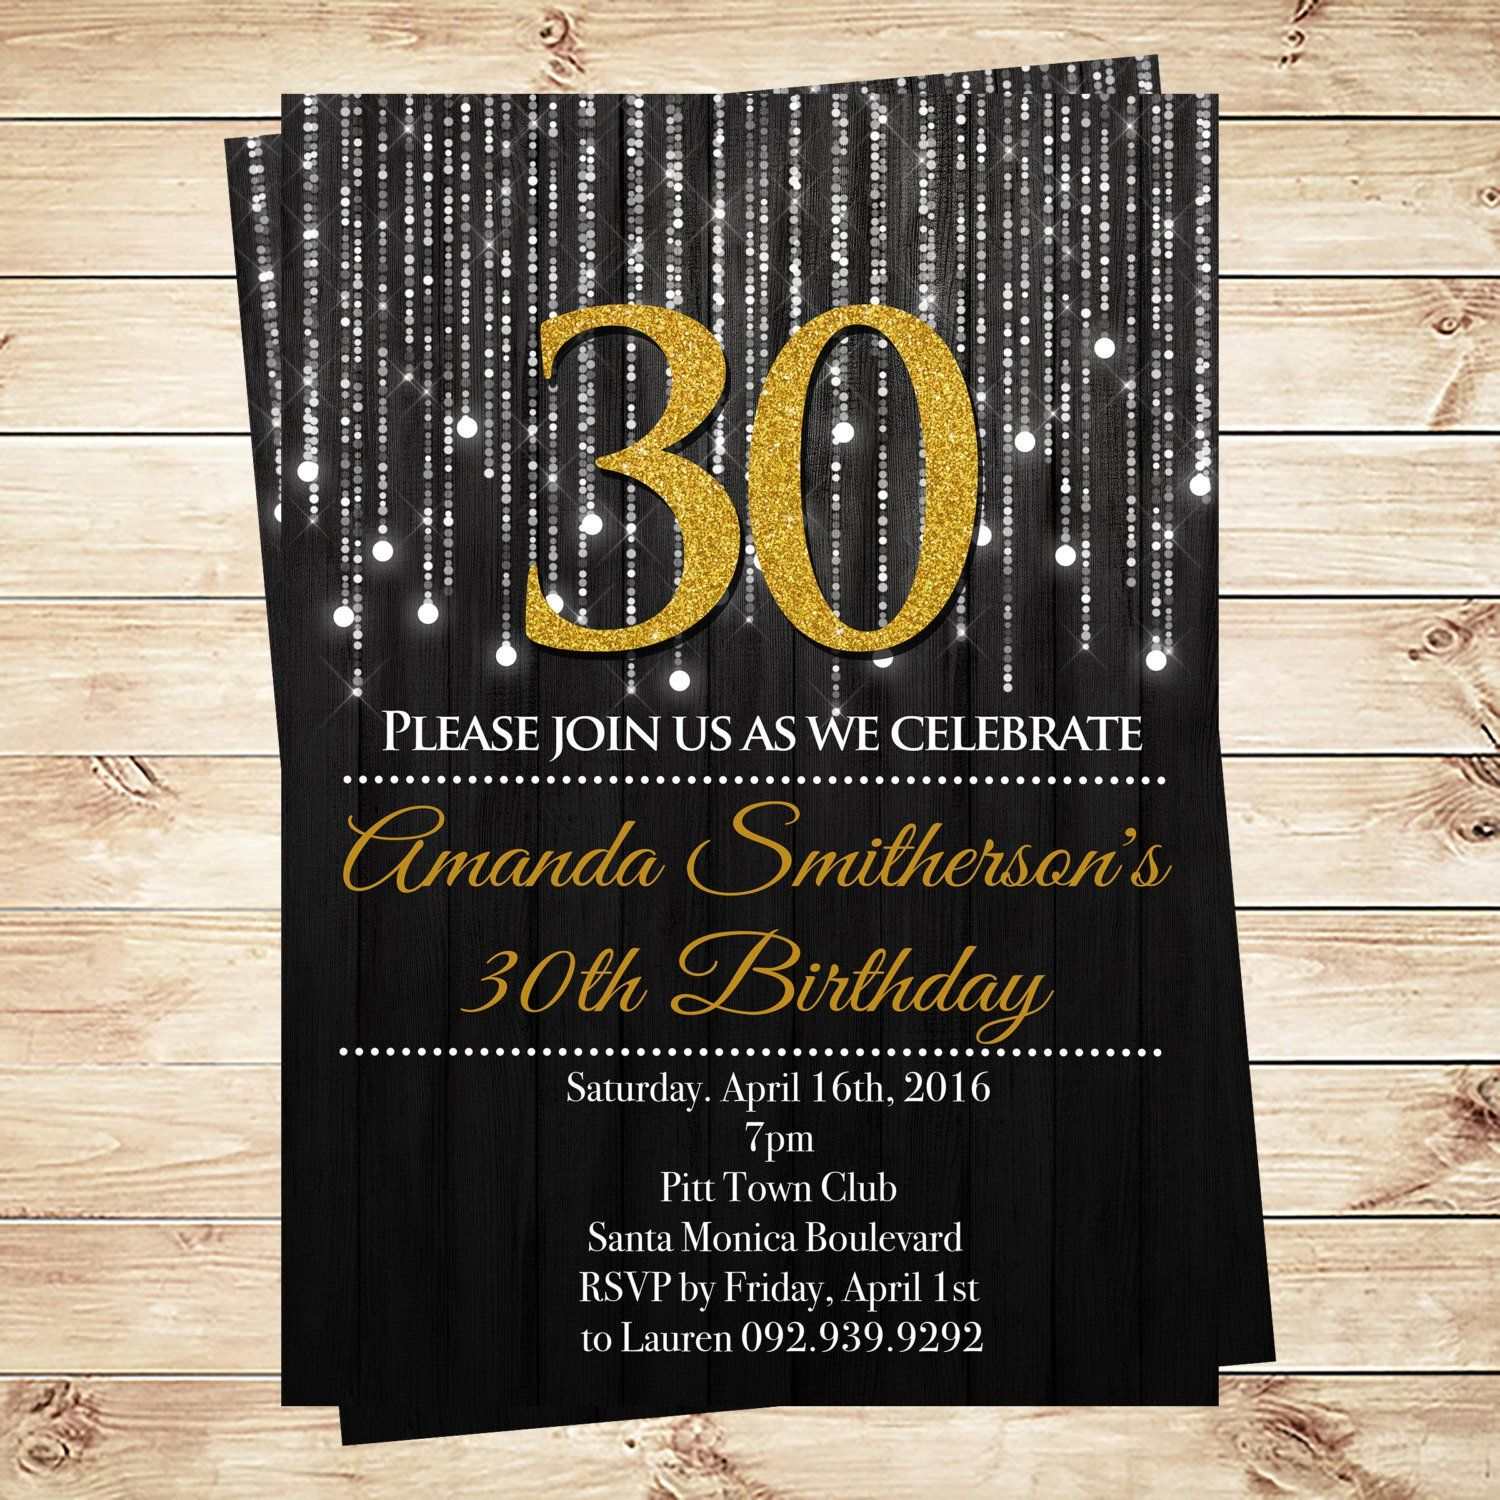 30th birthday invitation templates free download ; fdbc3beac610bd219f528acd454950f2